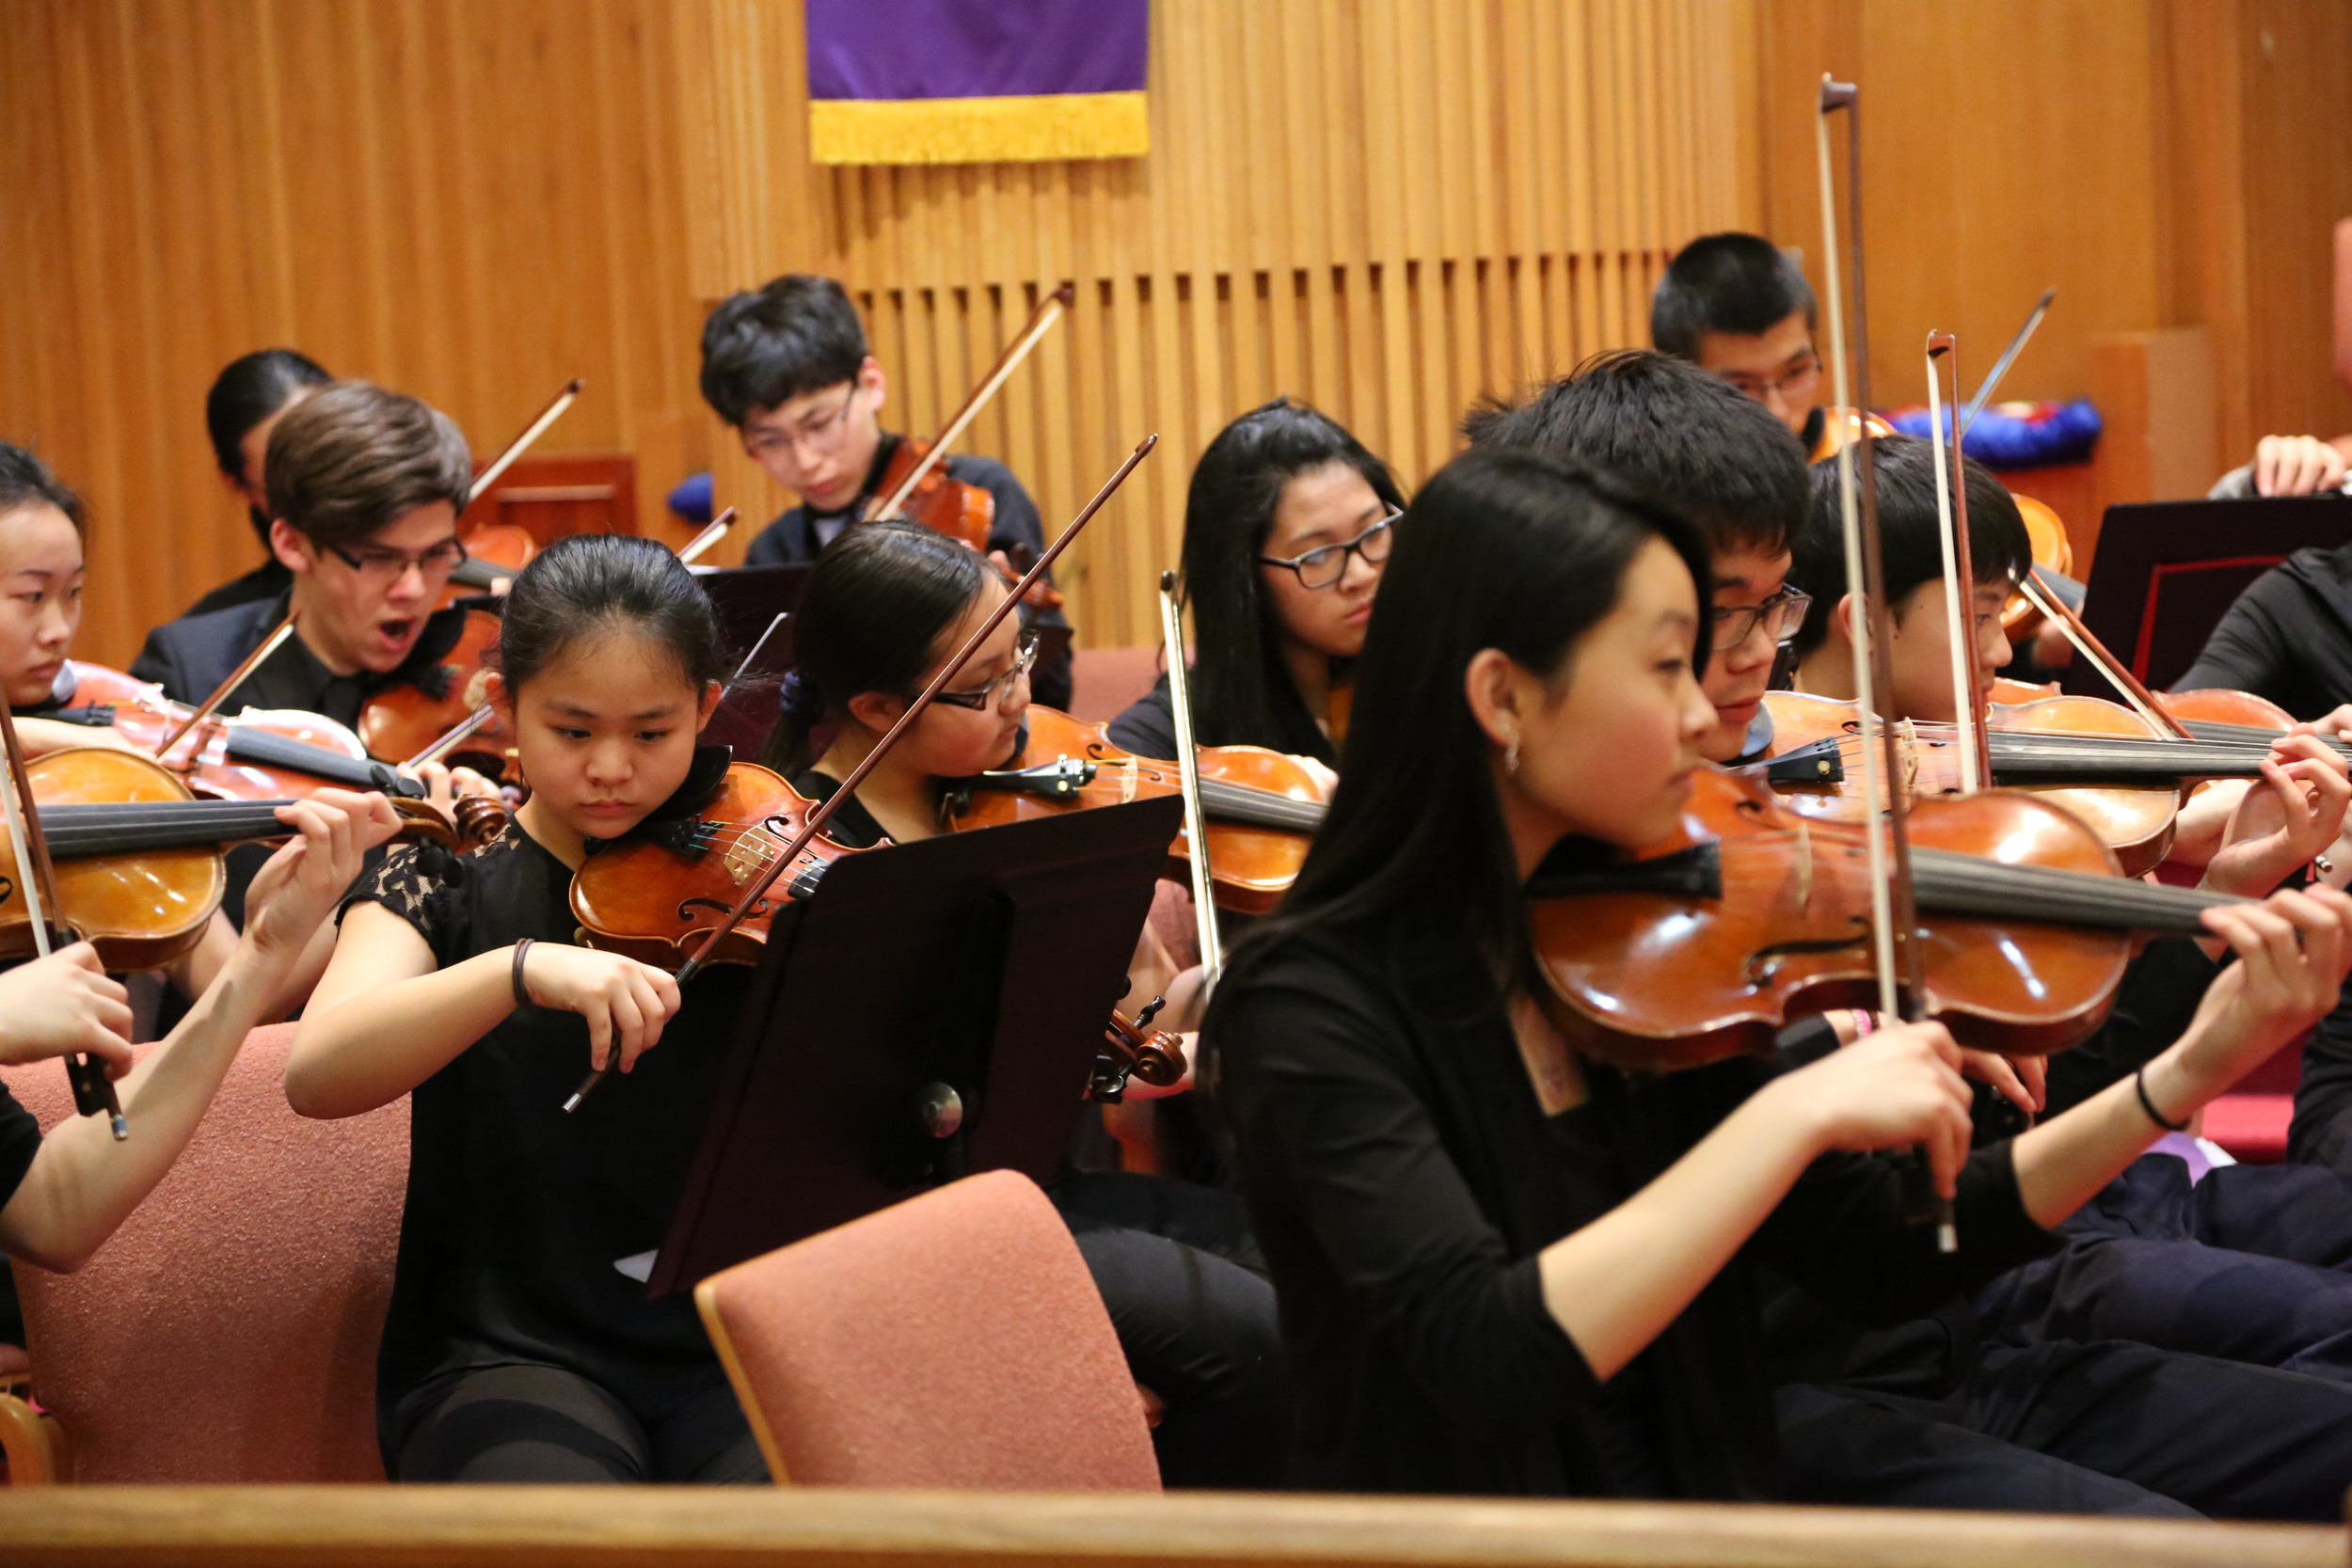 Katie Liu leading the orchestra